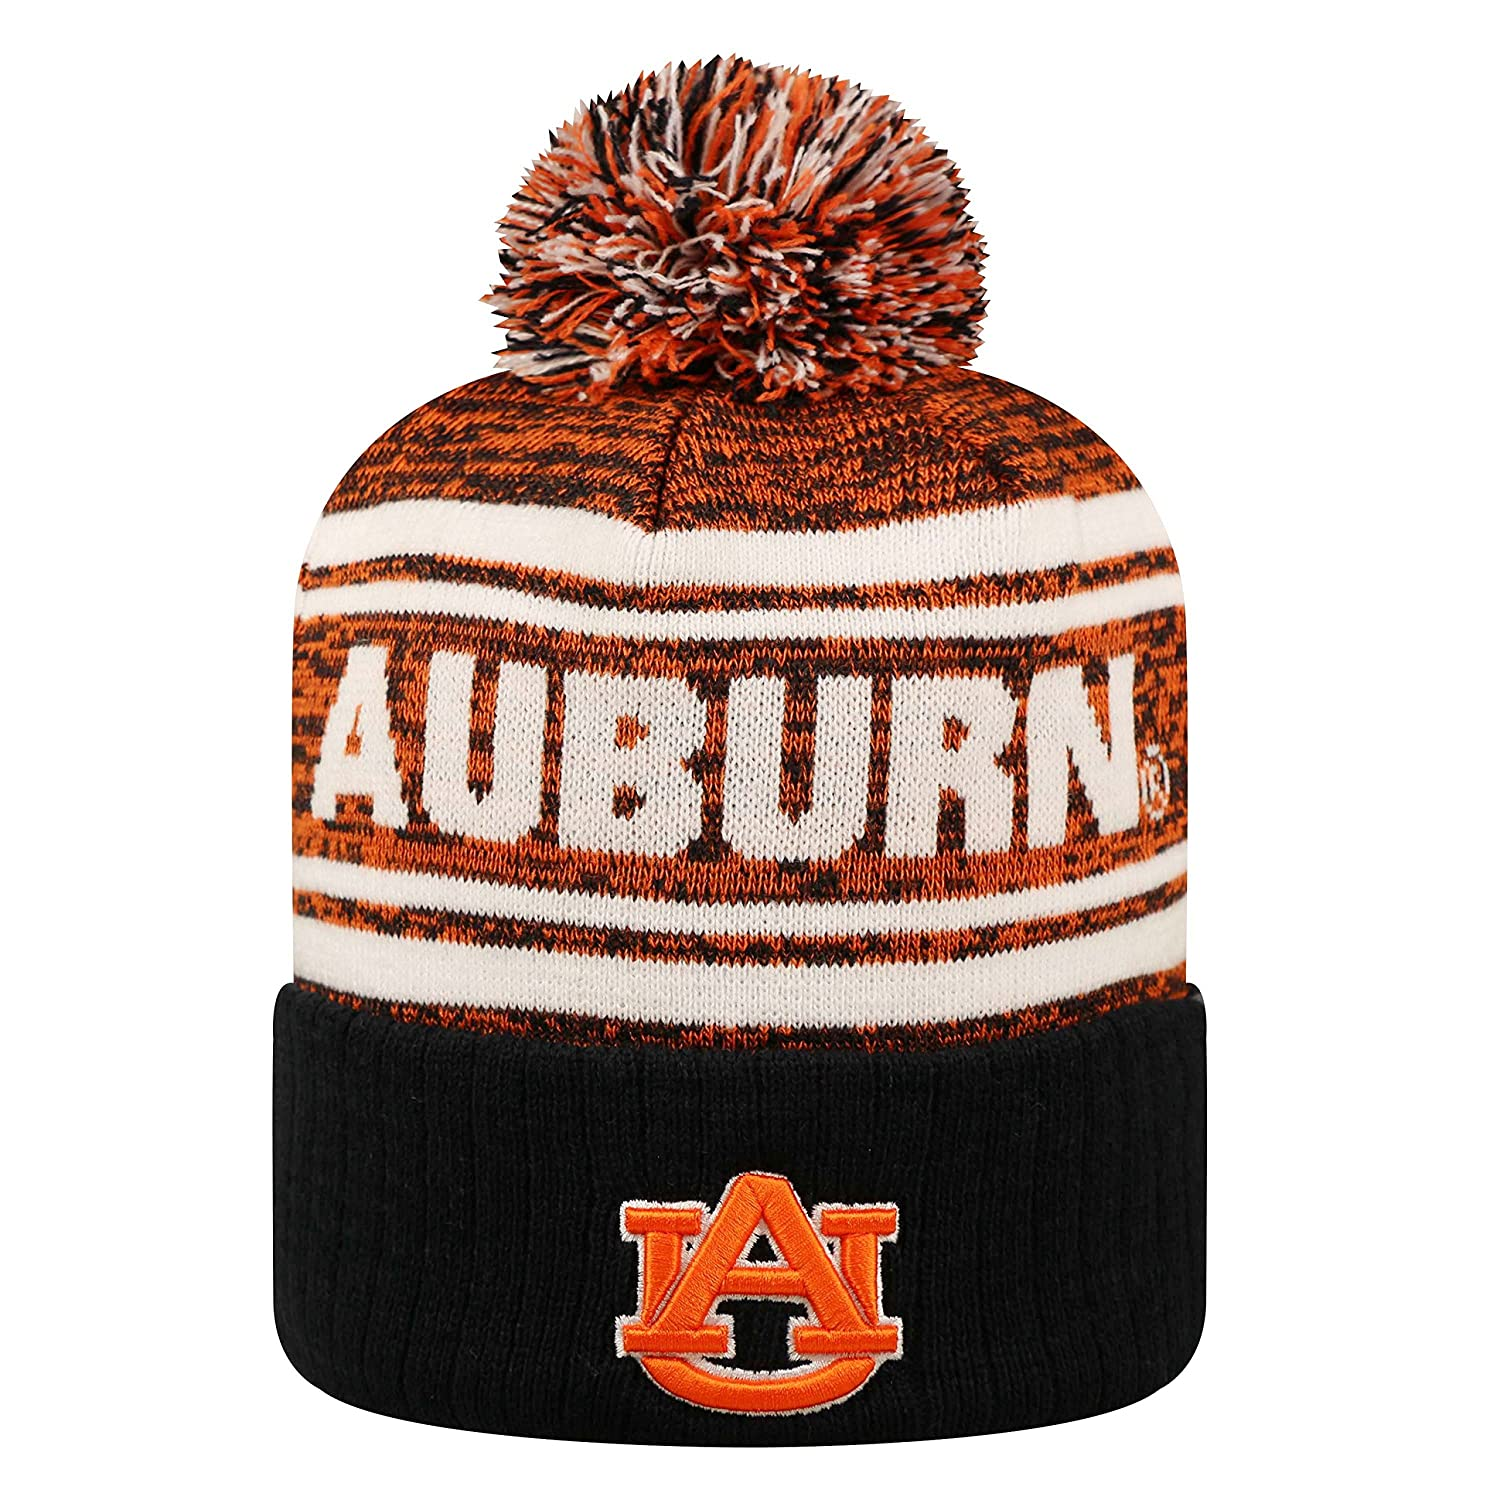 Caps & Hats Auburn Tigers TOW Navy Leisure Knit Slouchy Hipster Hanging Beanie Hat Cap